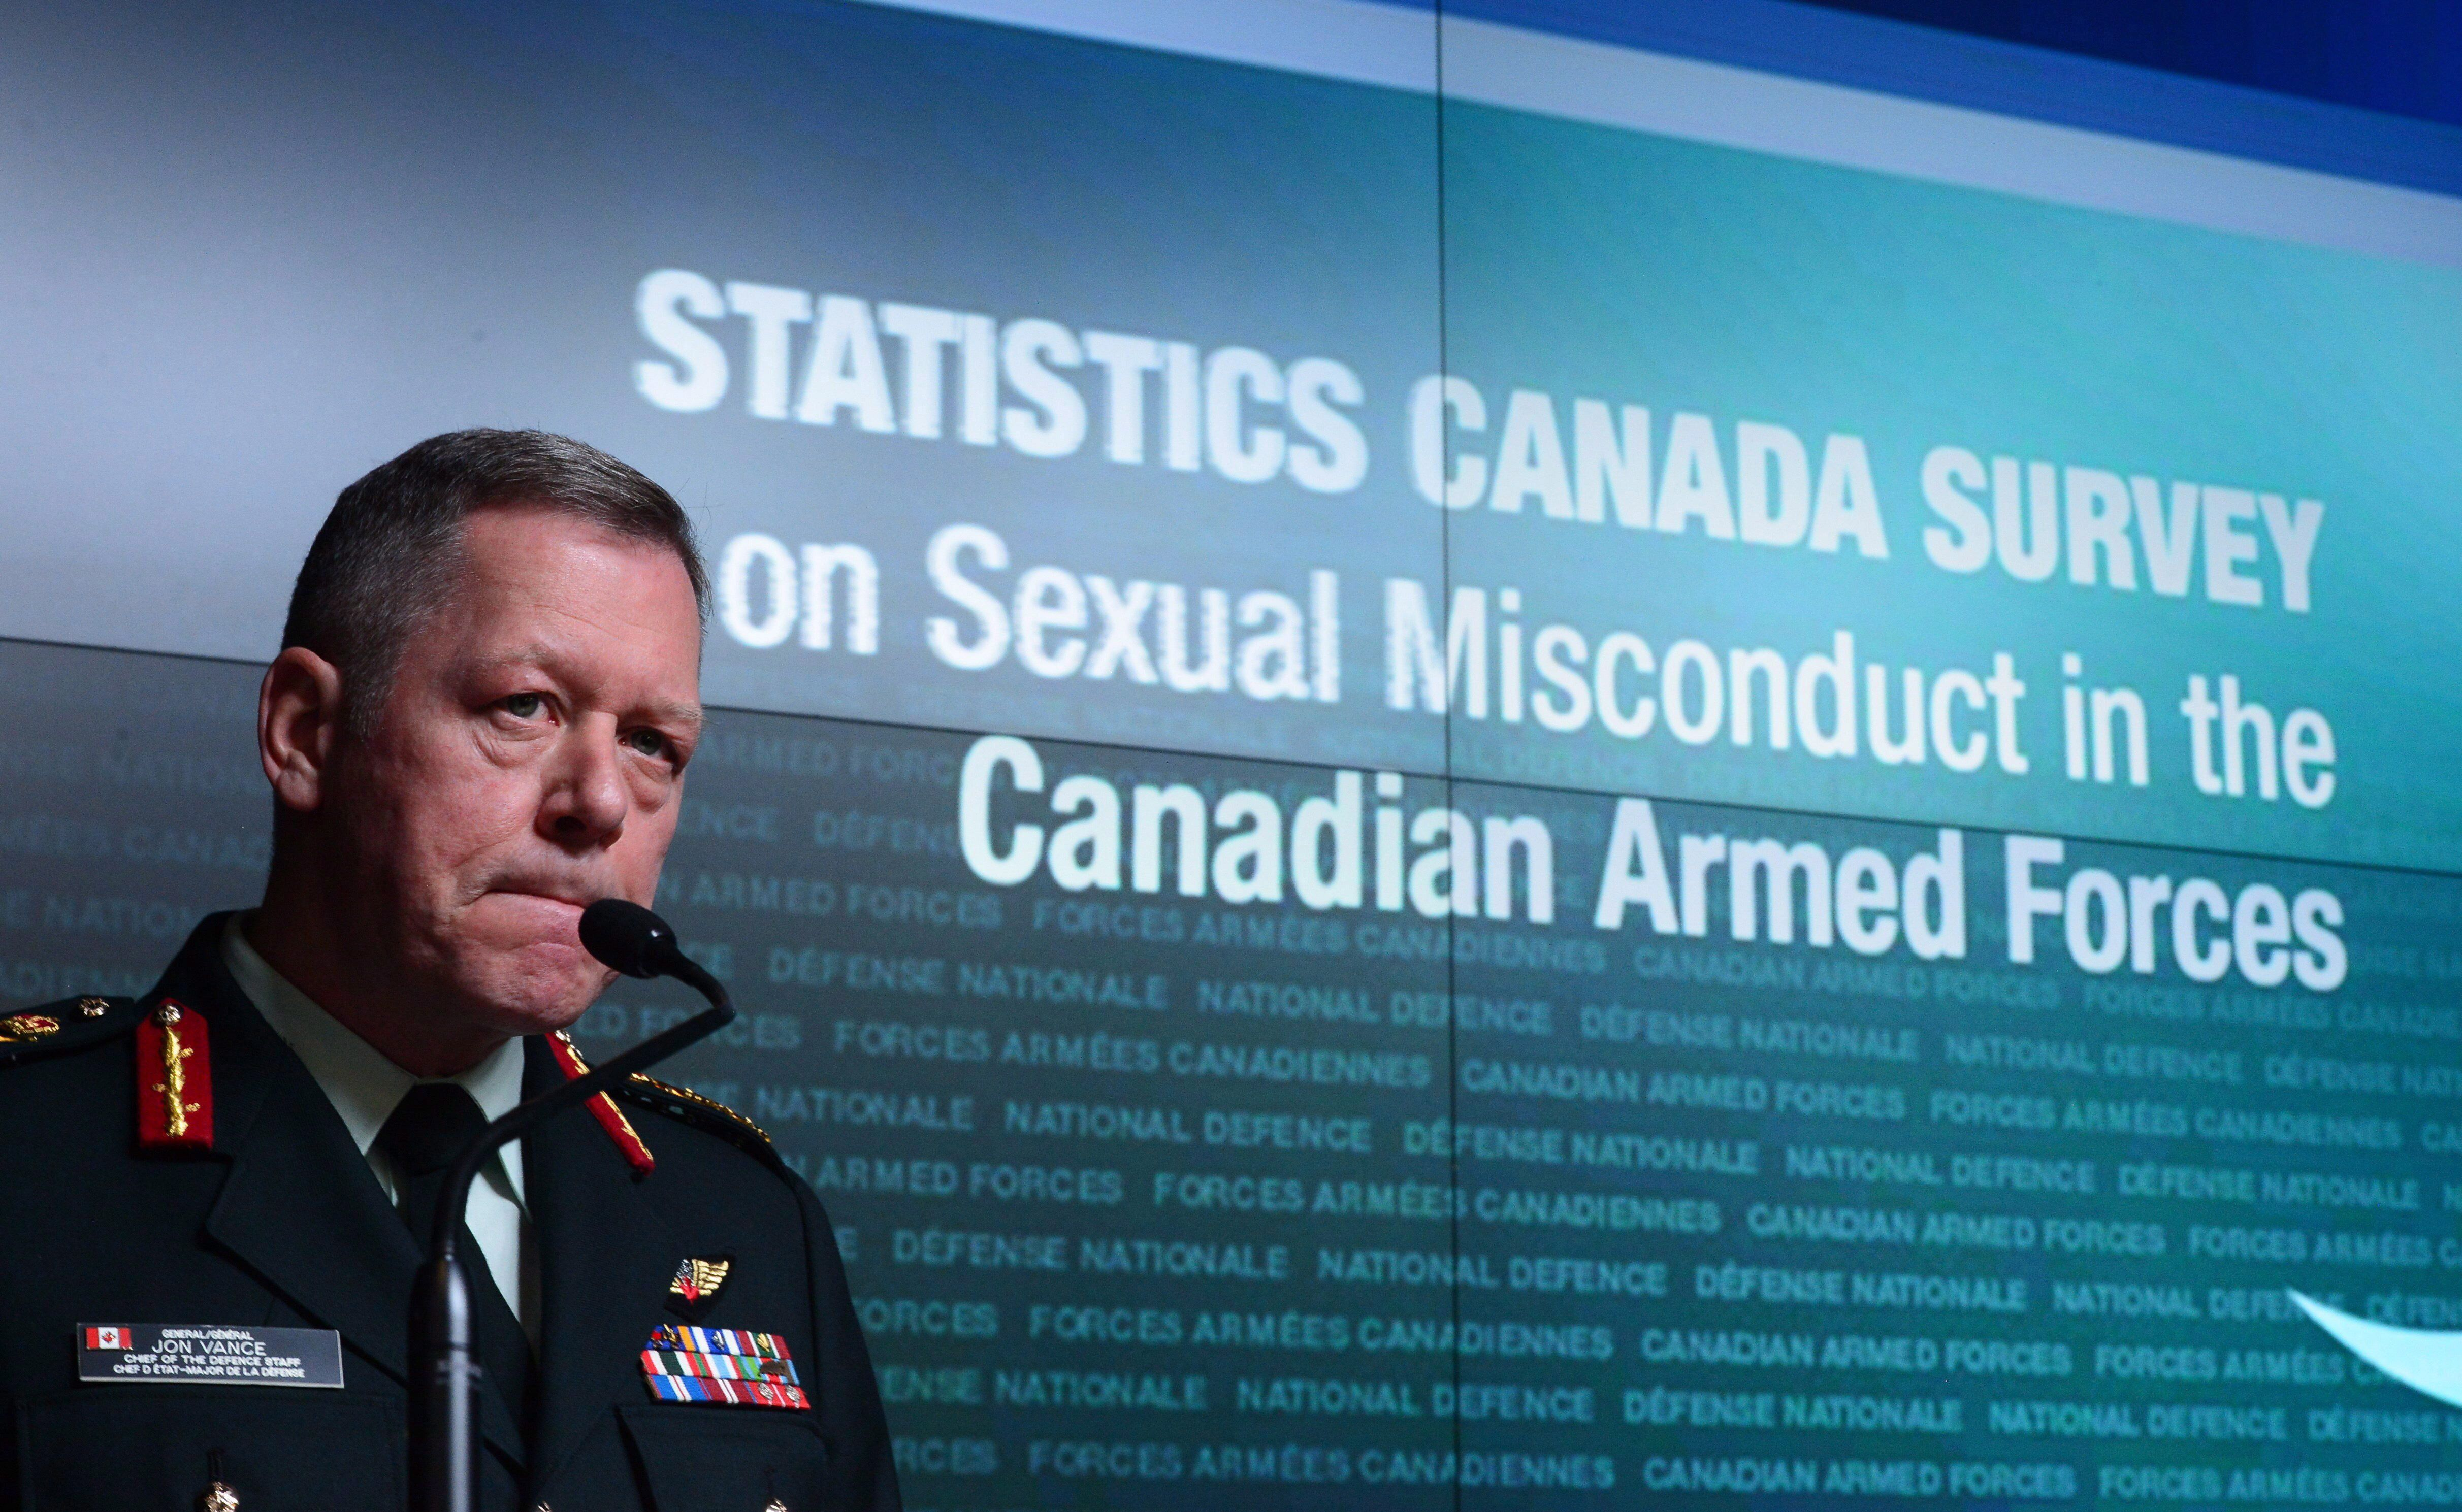 Canadian Military Has Made Minimal Progress On Sexual Misconduct Issue: Statistics Canada